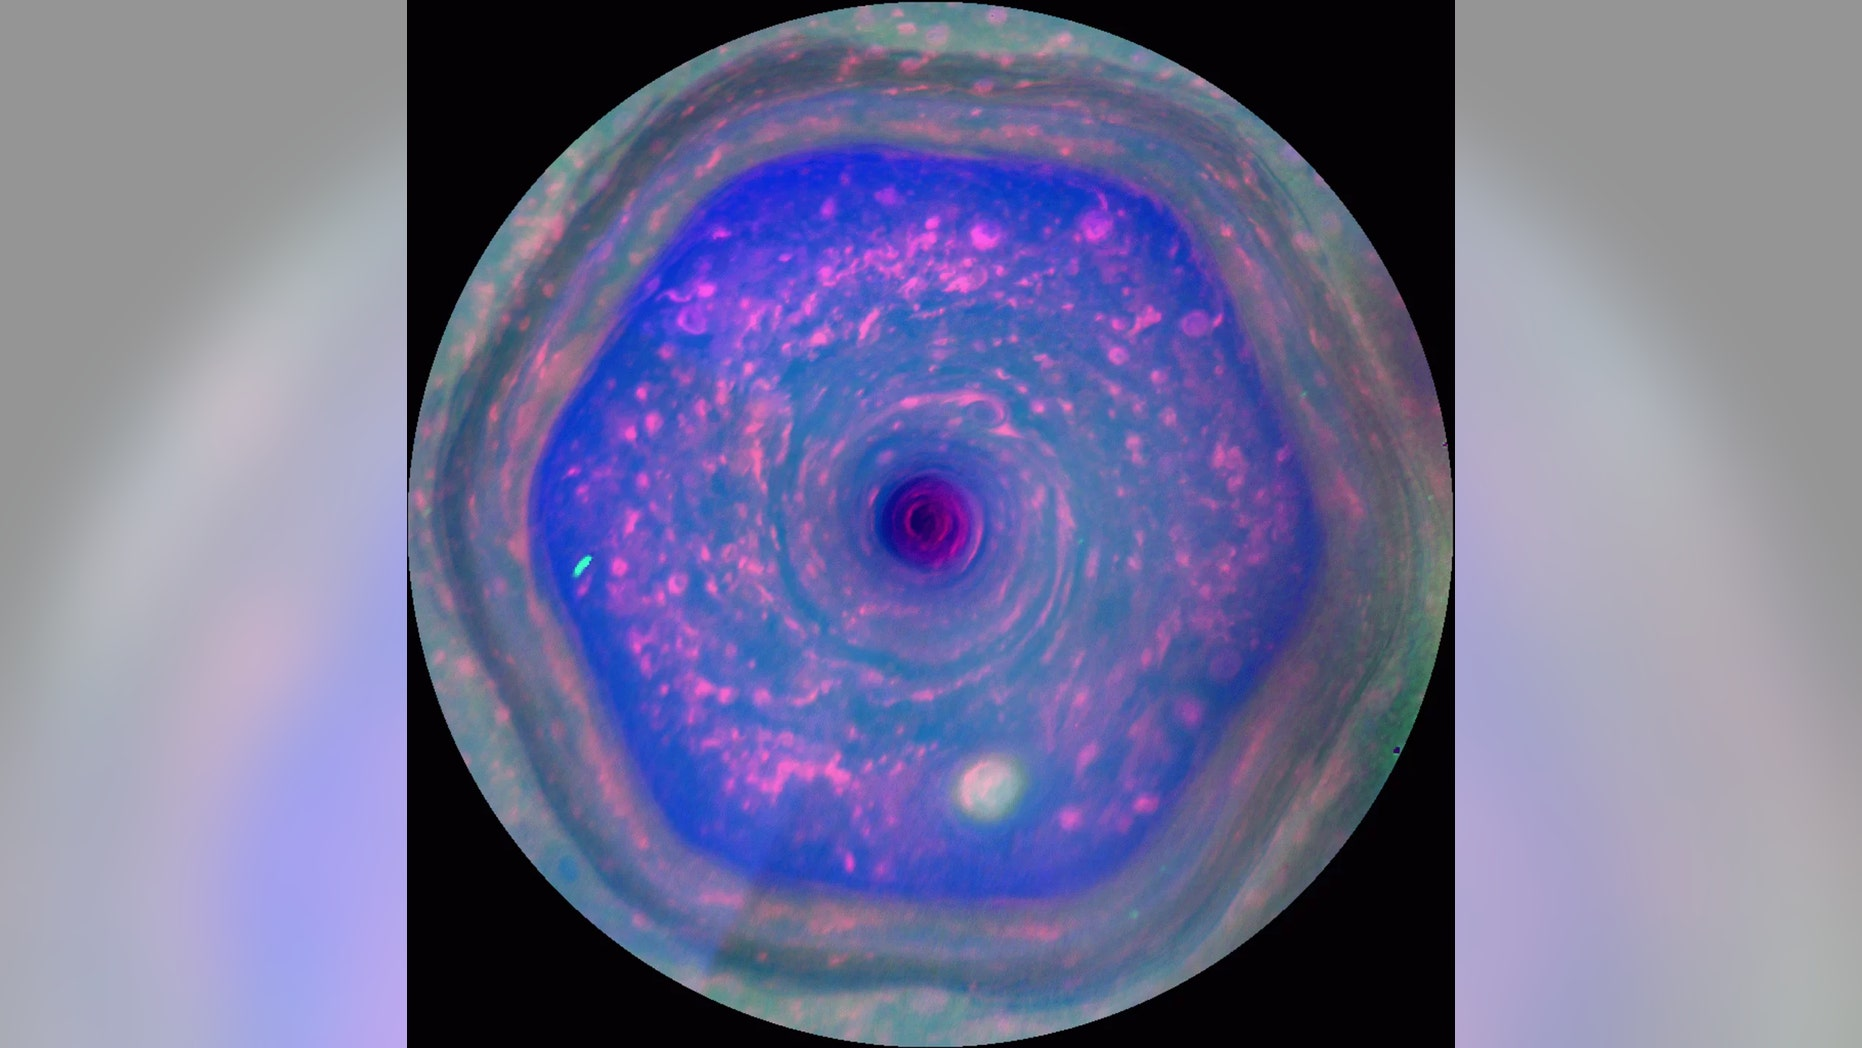 Saturn's north pole hexagon in motion as seen by the now-defunct Cassini spacecraft. (Credit: NASA/JPL-Caltech/SSI/Hampton University)